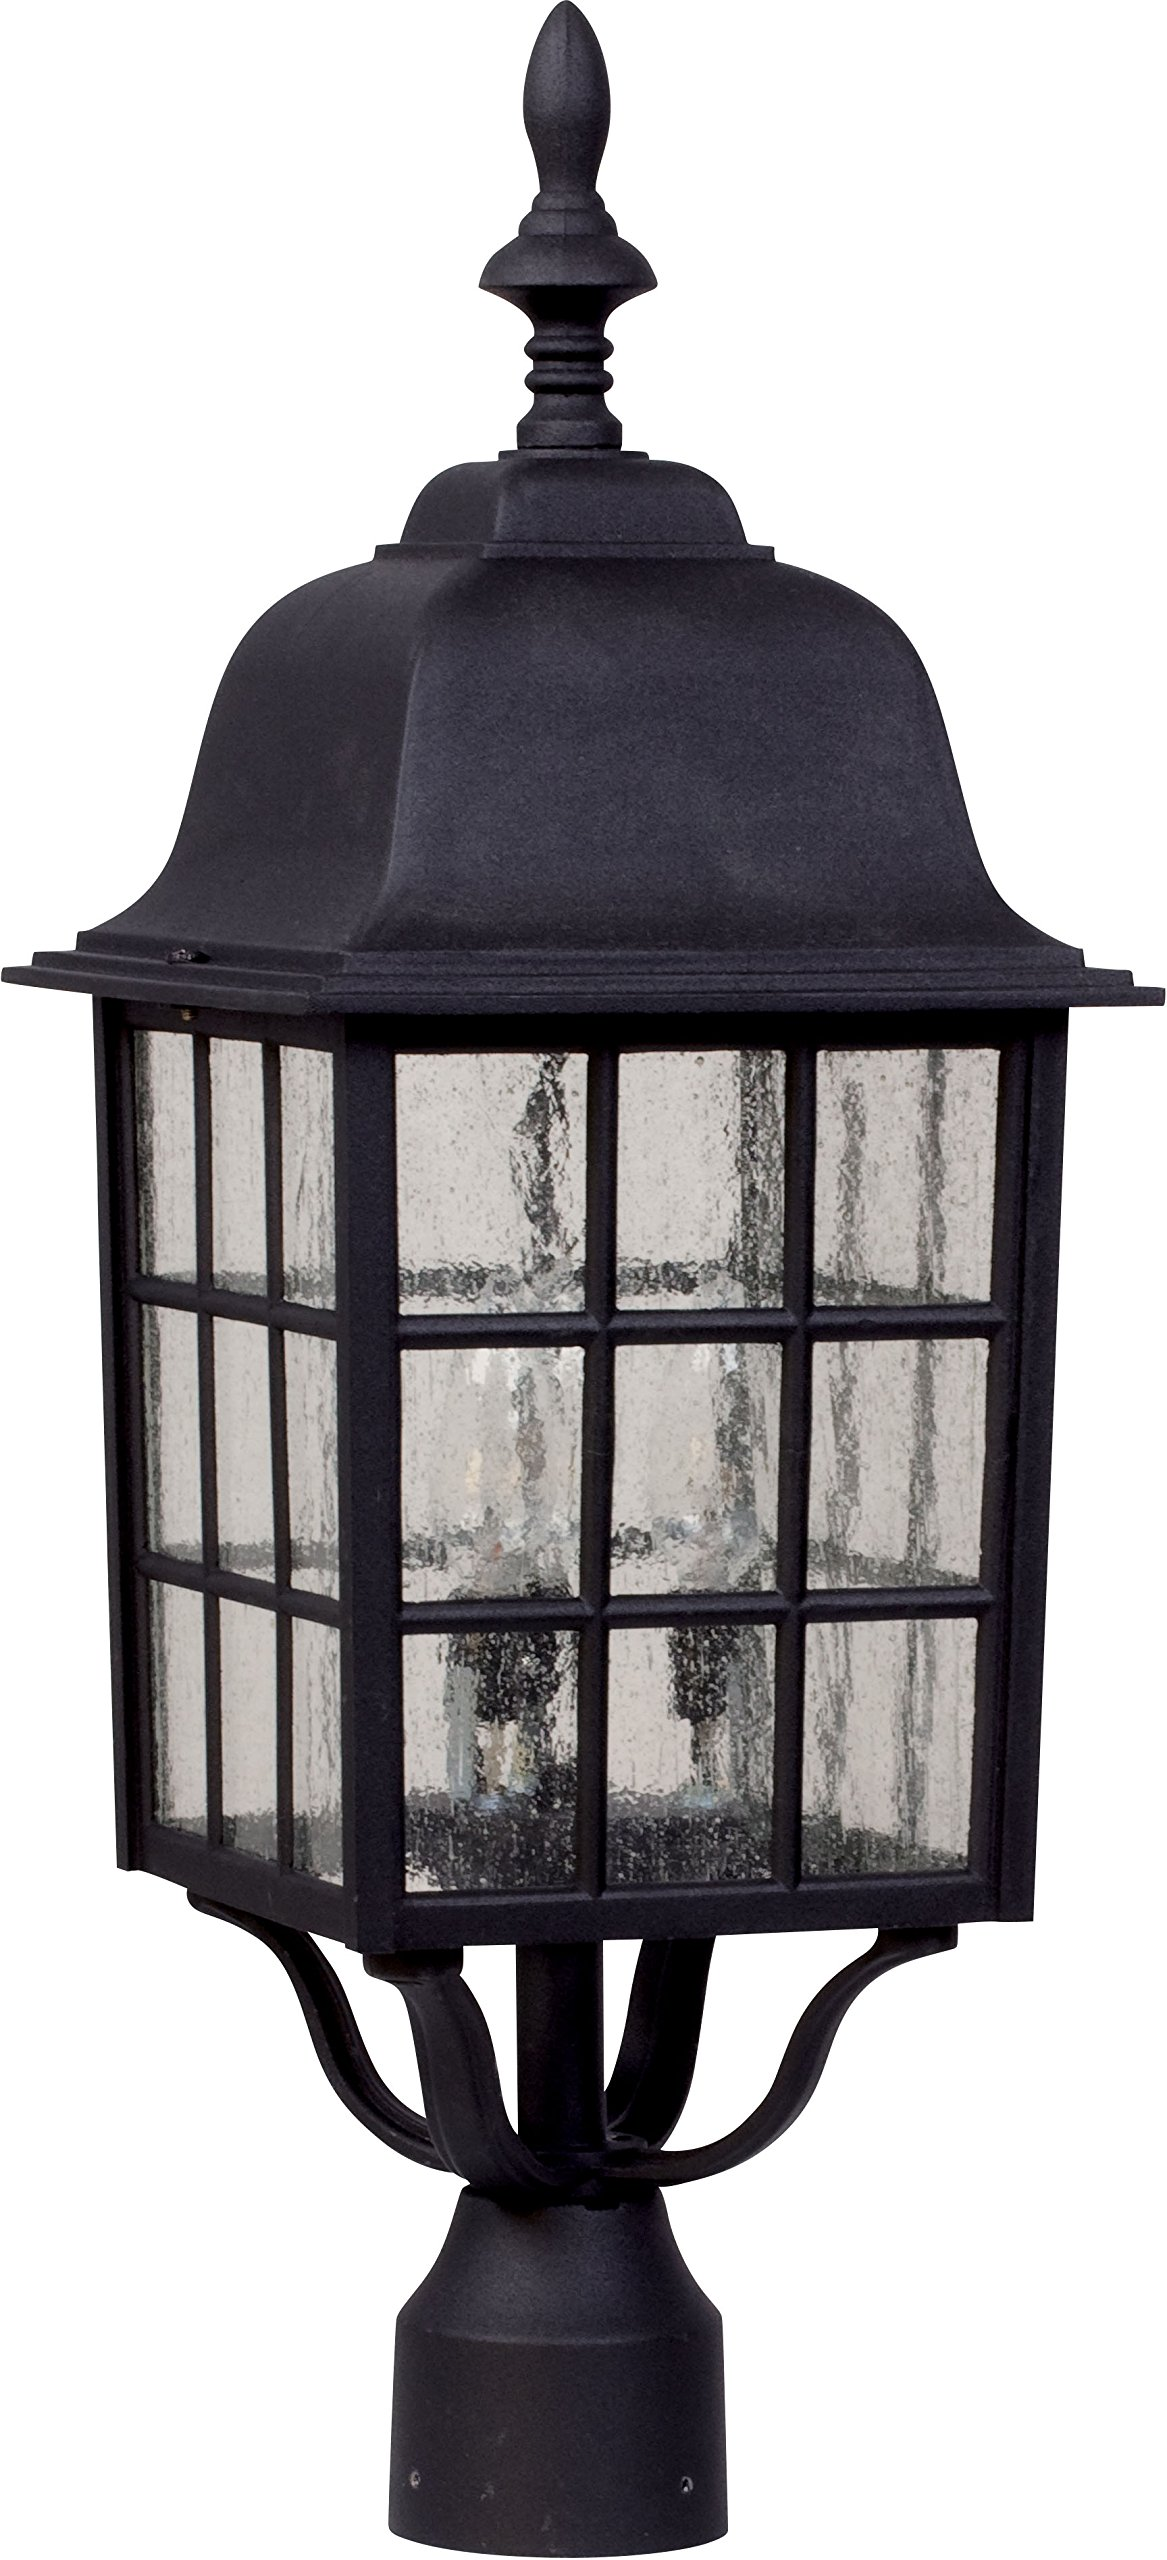 Craftmade Z575-05 Post Mount Light with Seeded Glass Shades, Black Finish